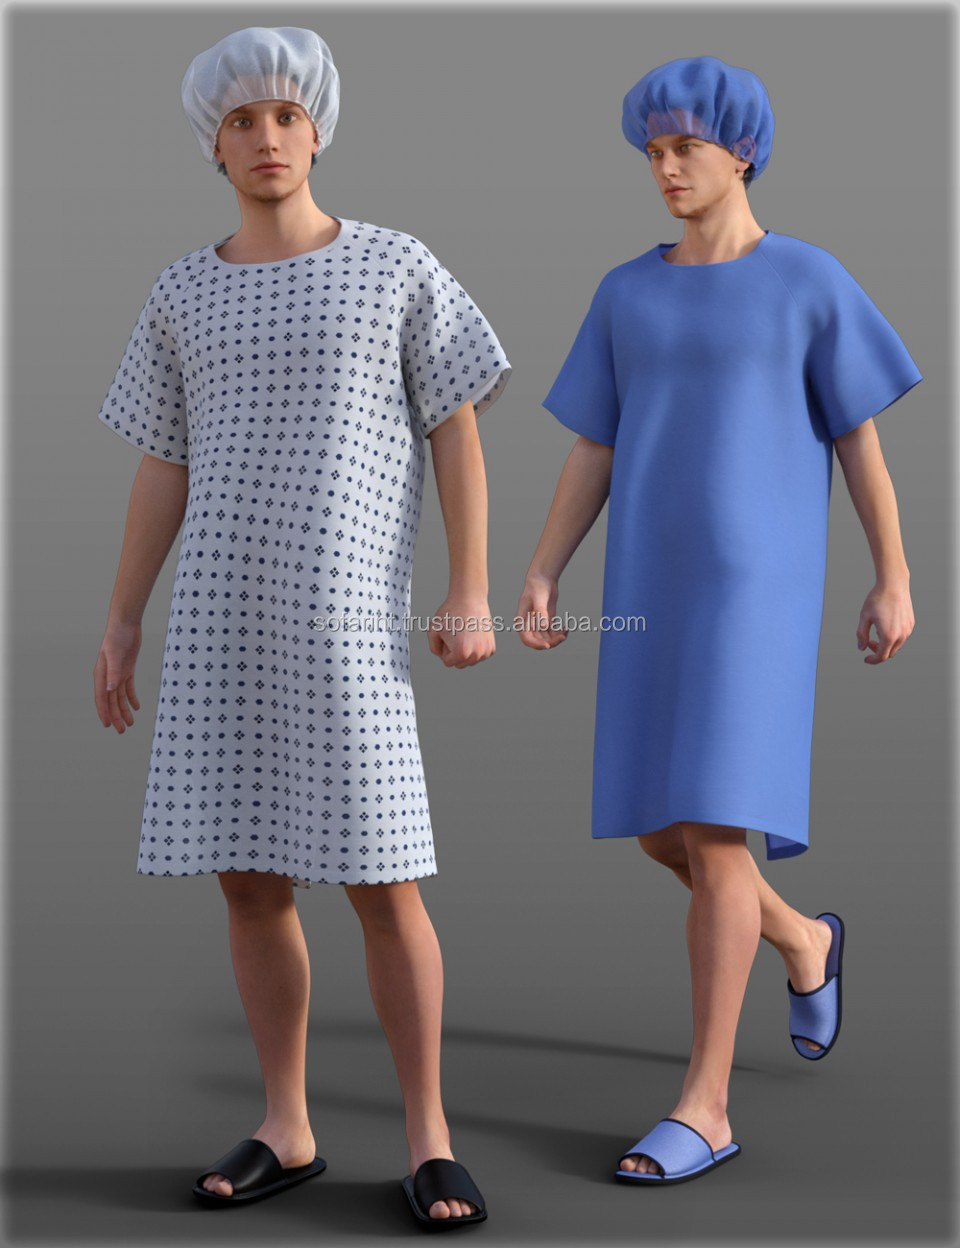 Operation Gown   Hospital Working Clothing   Doctor Scrub   Medical Uniform